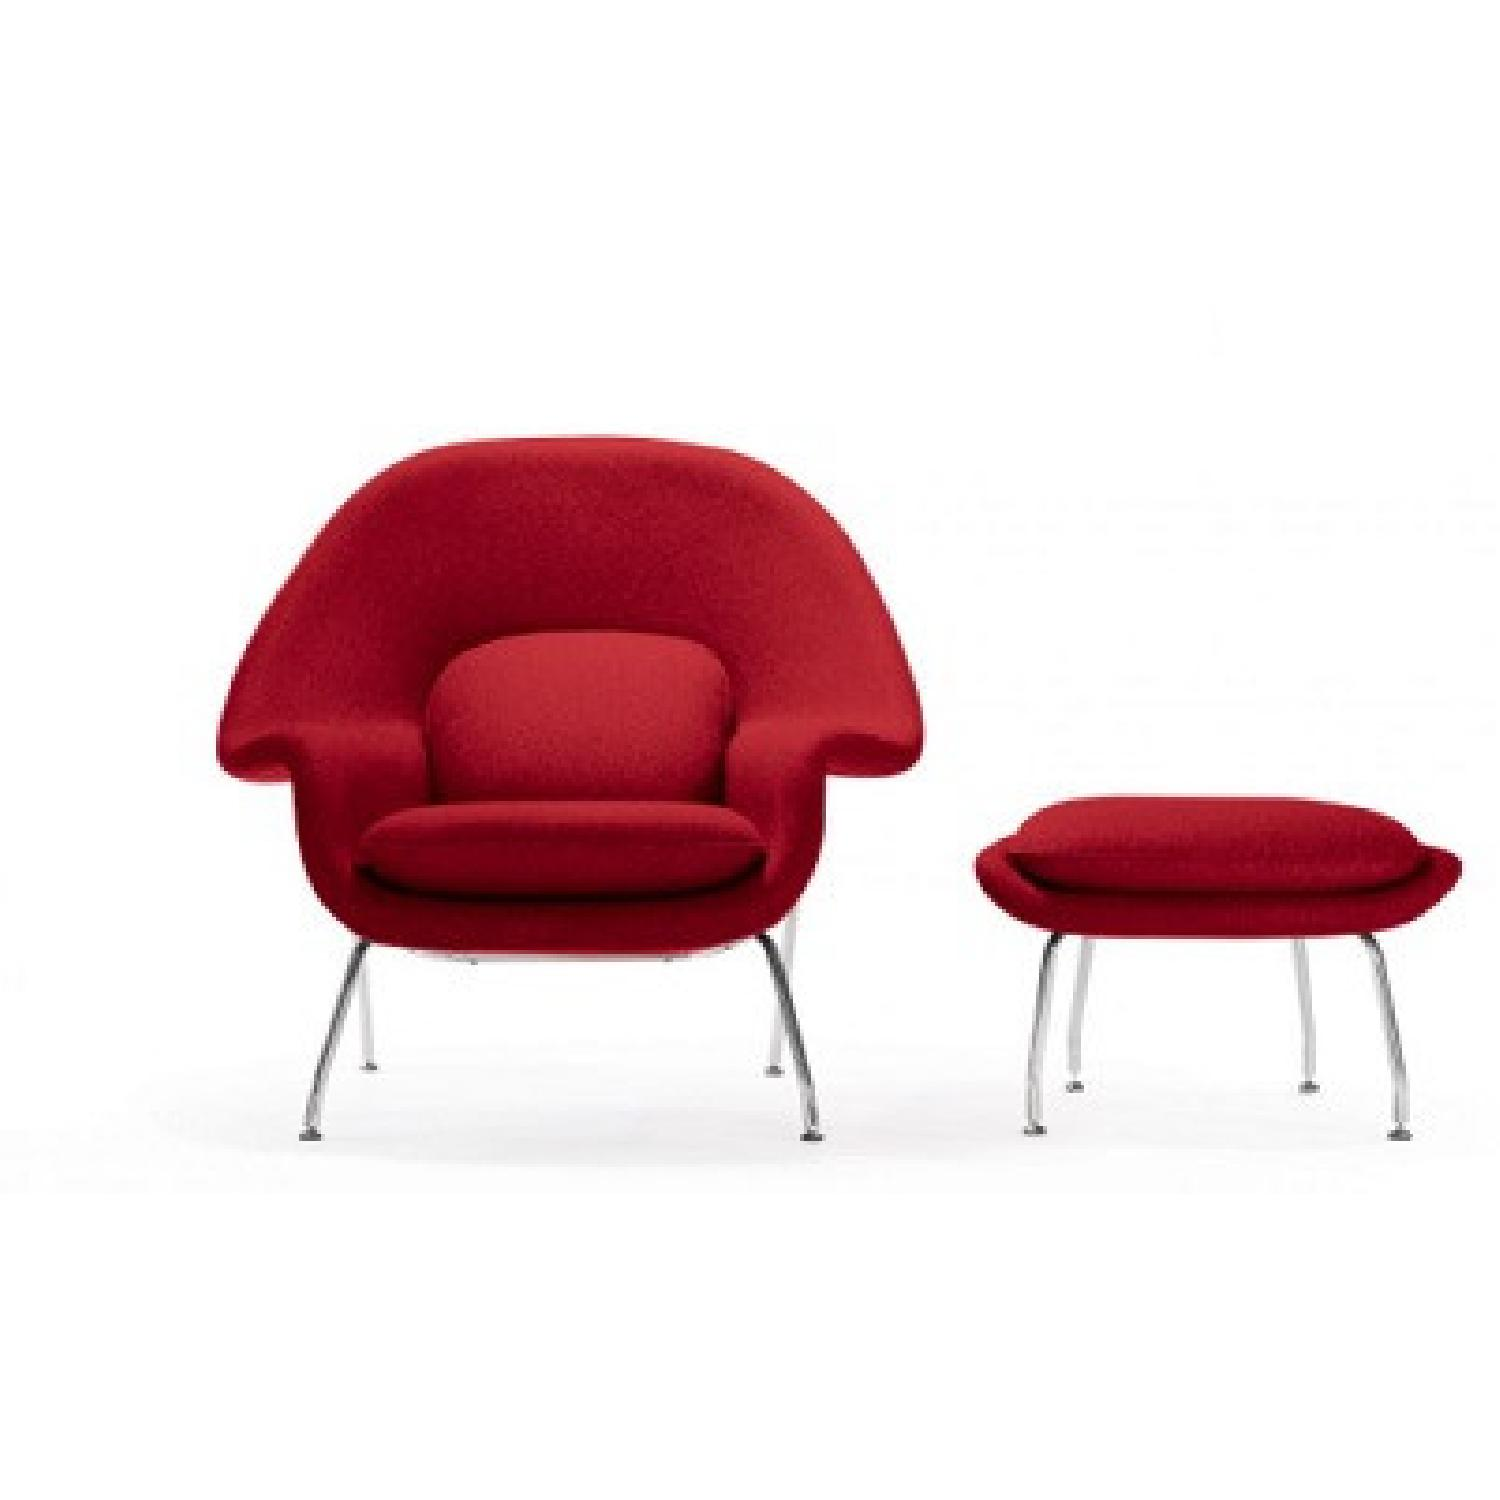 Rove Concepts Womb Chair and Ottoman - image-4